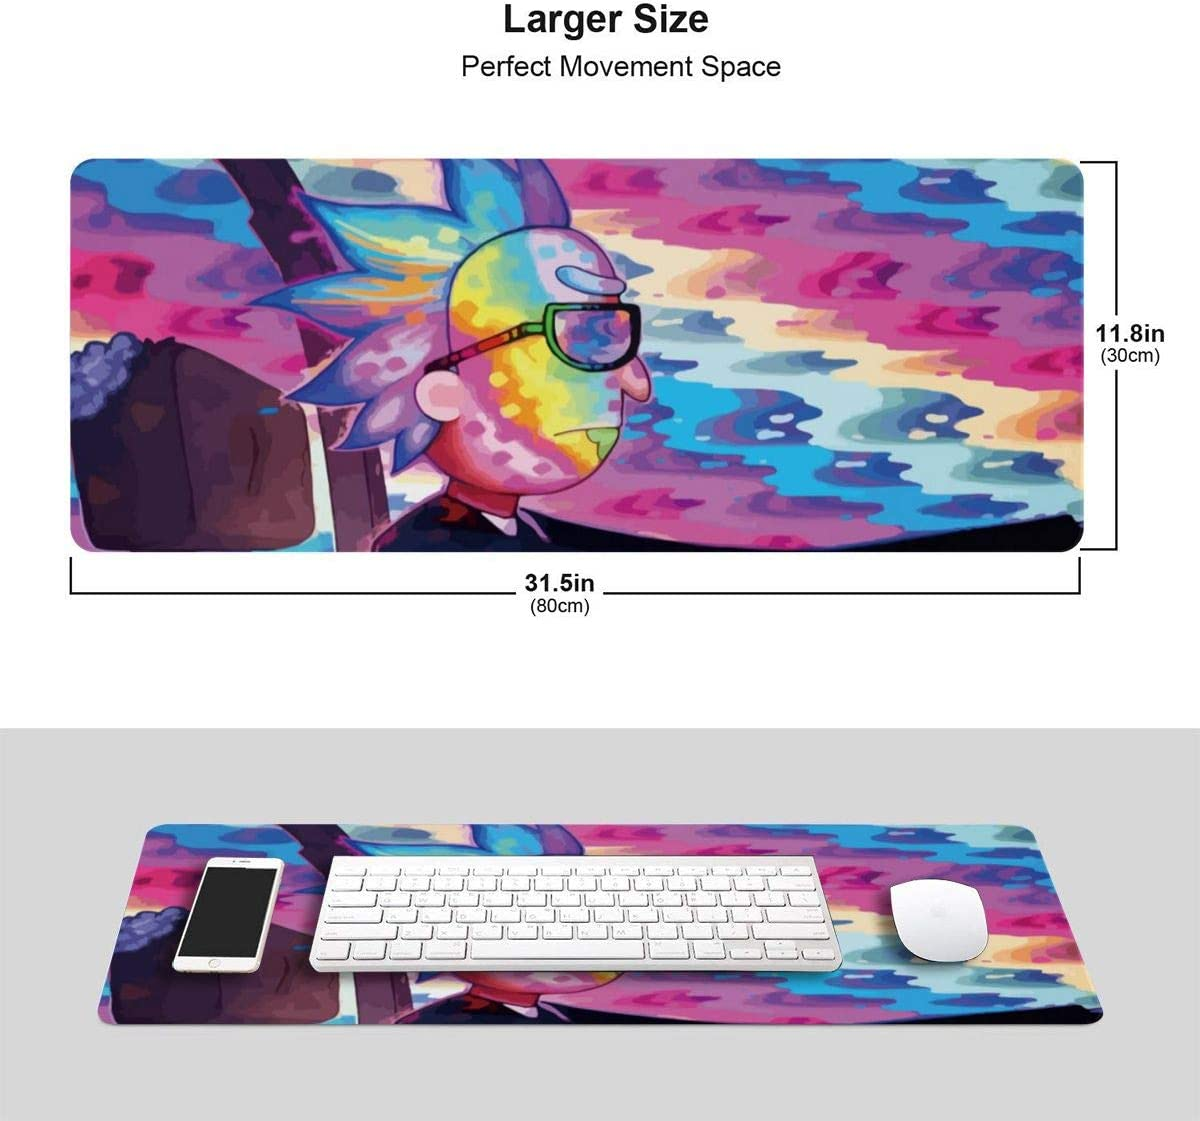 Morty with Stitched Edges Gaming Mouse Mat Non-Slip Rubber Base Mousepad for Laptop,Computer,PC,Keyboard,11.8x23.6 Large Mouse Pad for Rick